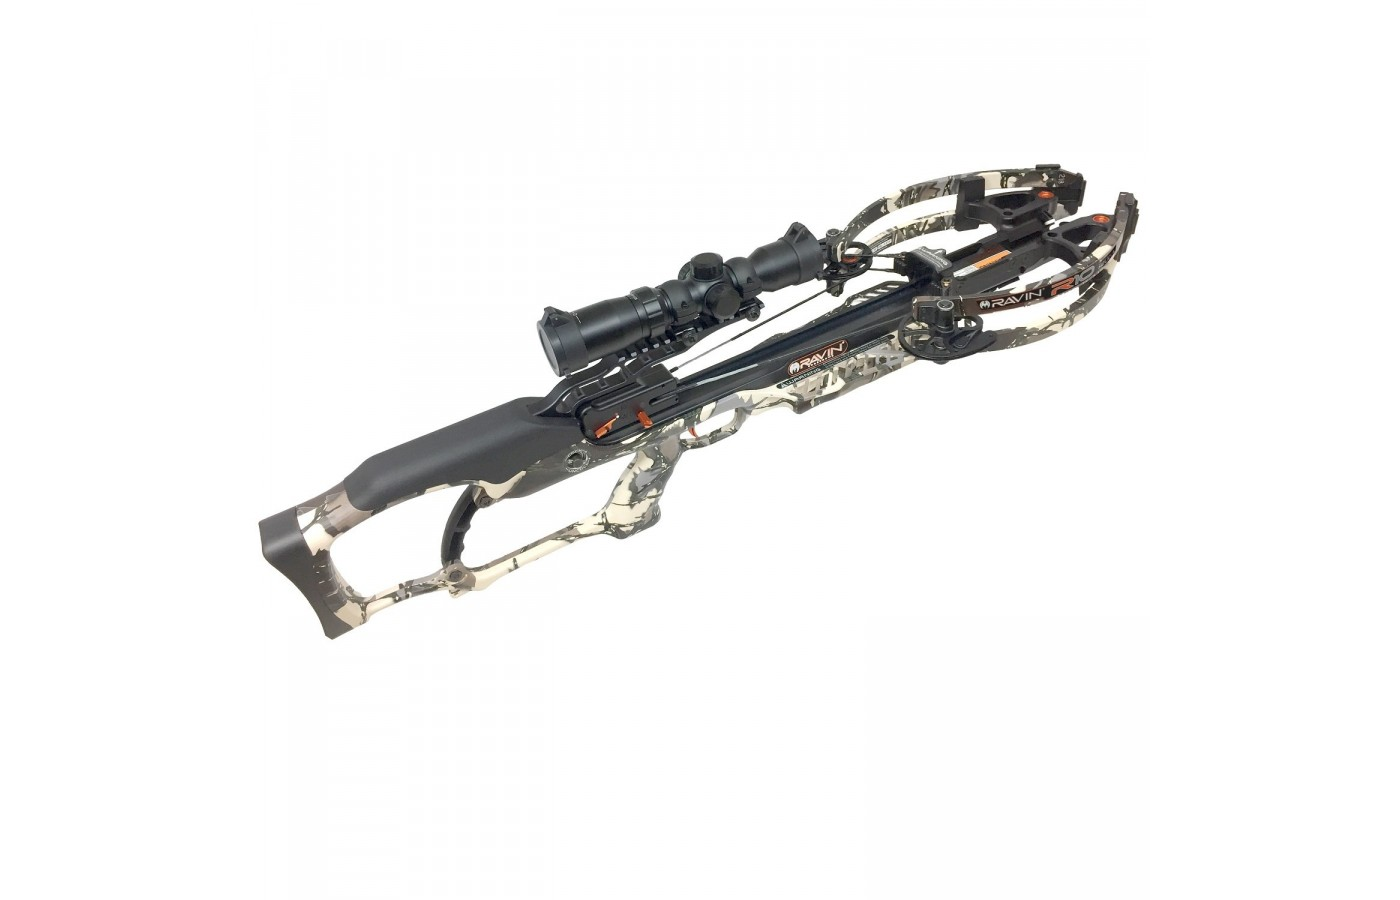 This crossbow is lightweight and compact.